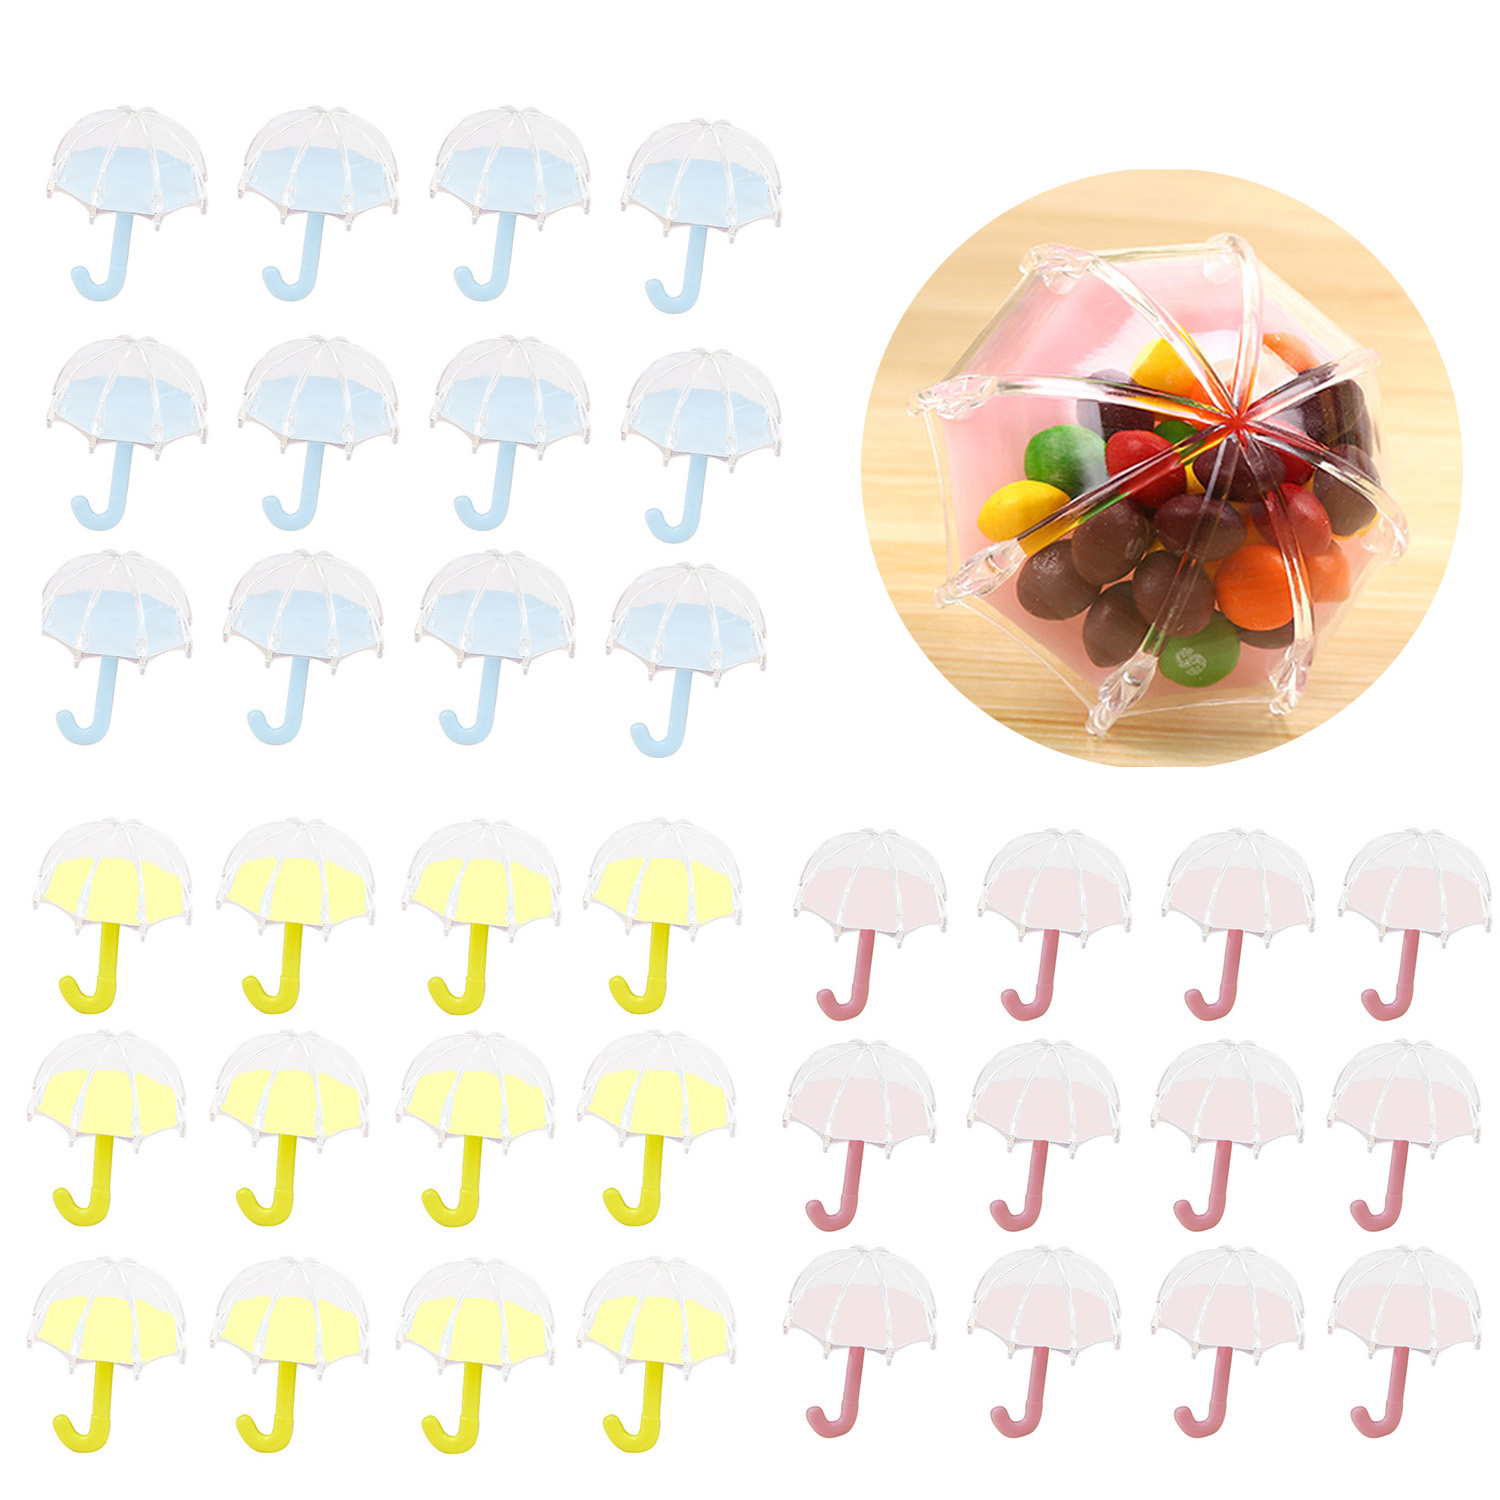 Behogar 12pcs Lovely Clear Umbrella Style Candy Chocolate Boxes Thank You Wedding Favor Gift Box Package Birthday Party Supplies